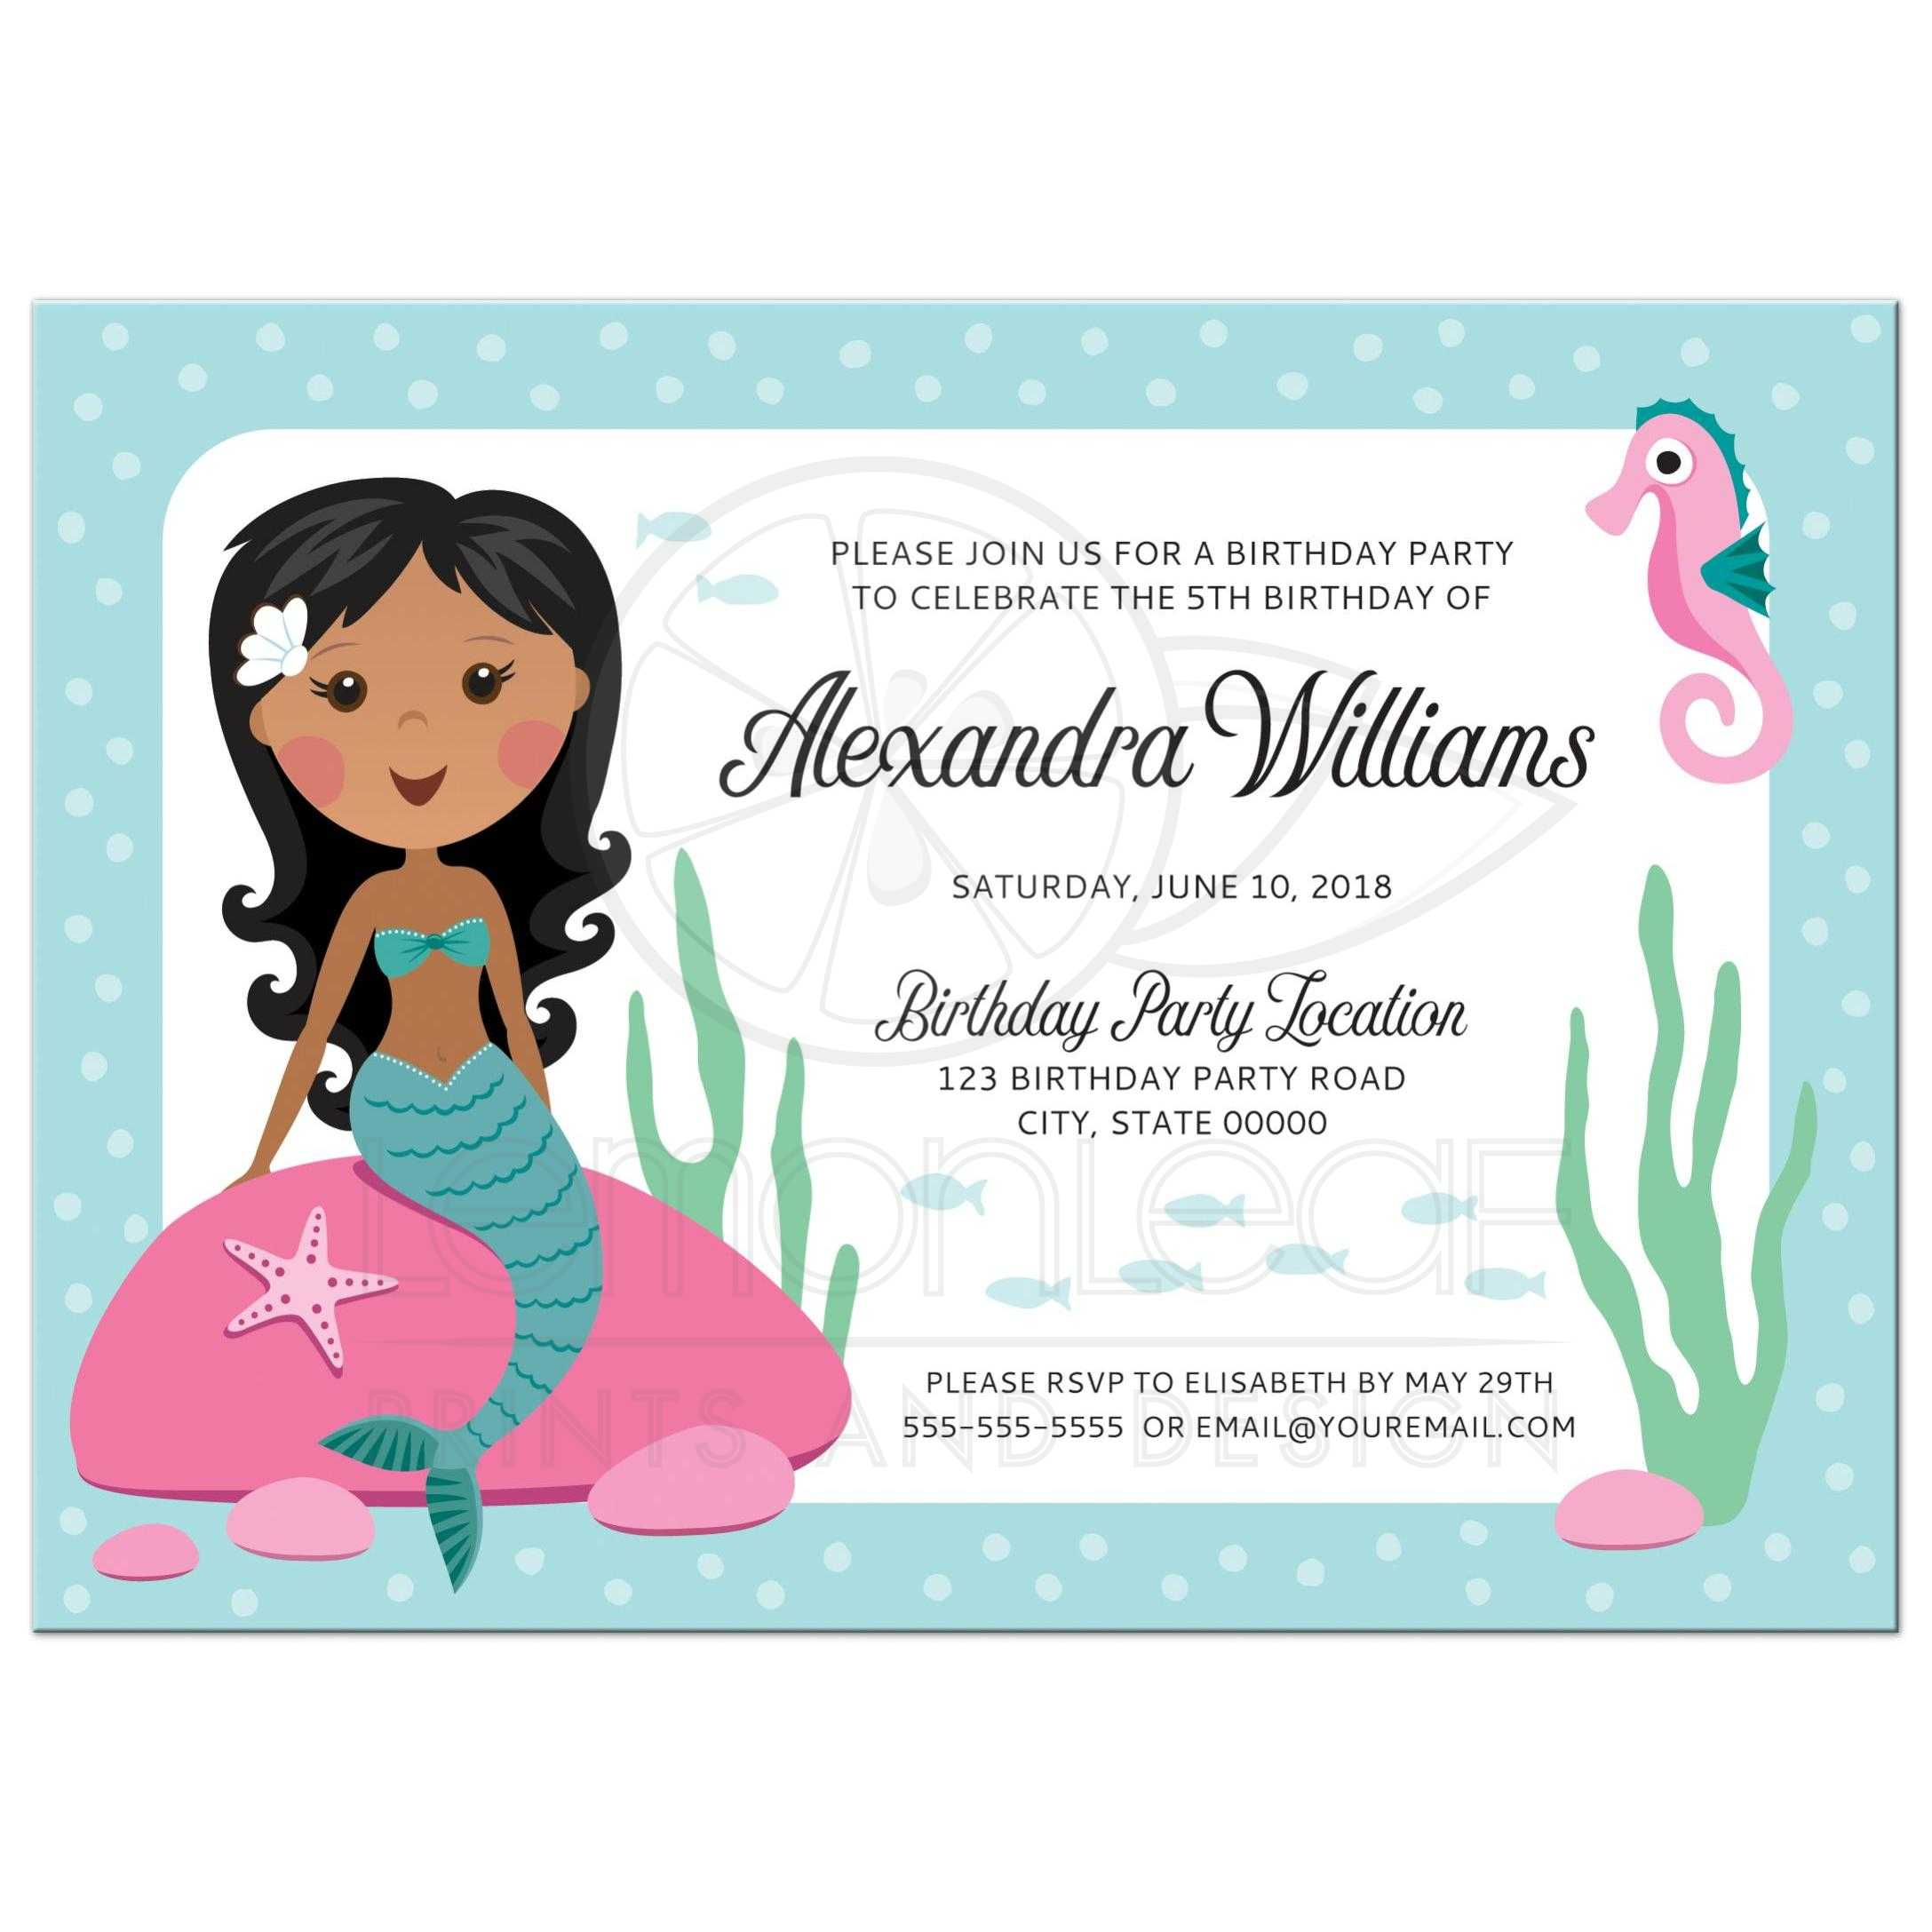 Mermaid birthday party invitation for kids with african american or ...